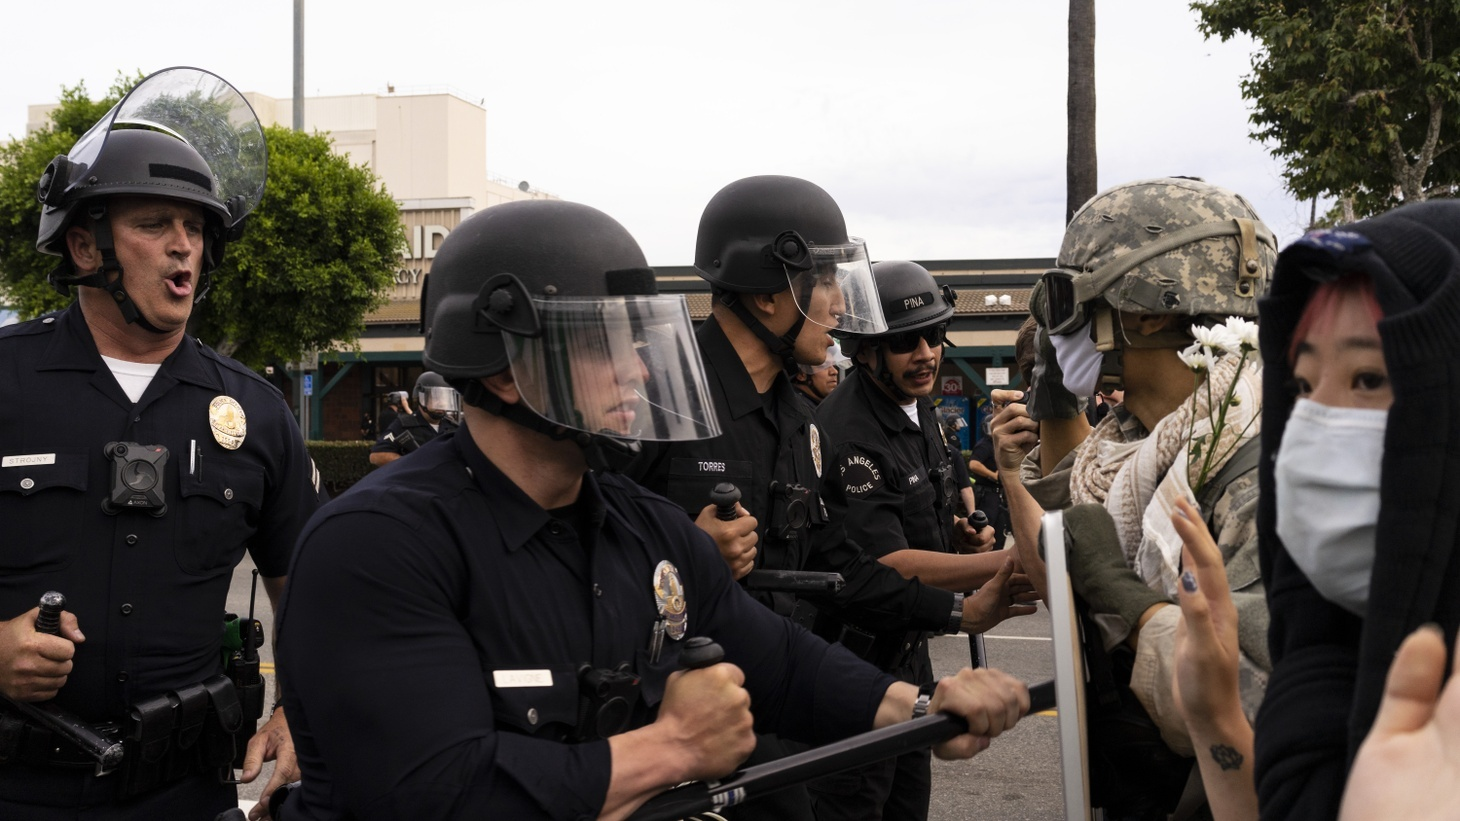 At the intersection of Sunset and Vine, LAPD officers attempt to drive back a small group of protestors. Angelenos took to the streets to protest continued police violence in the wake of George Floyd's death by Minnesota police. June 1, 2020, Los Angeles.